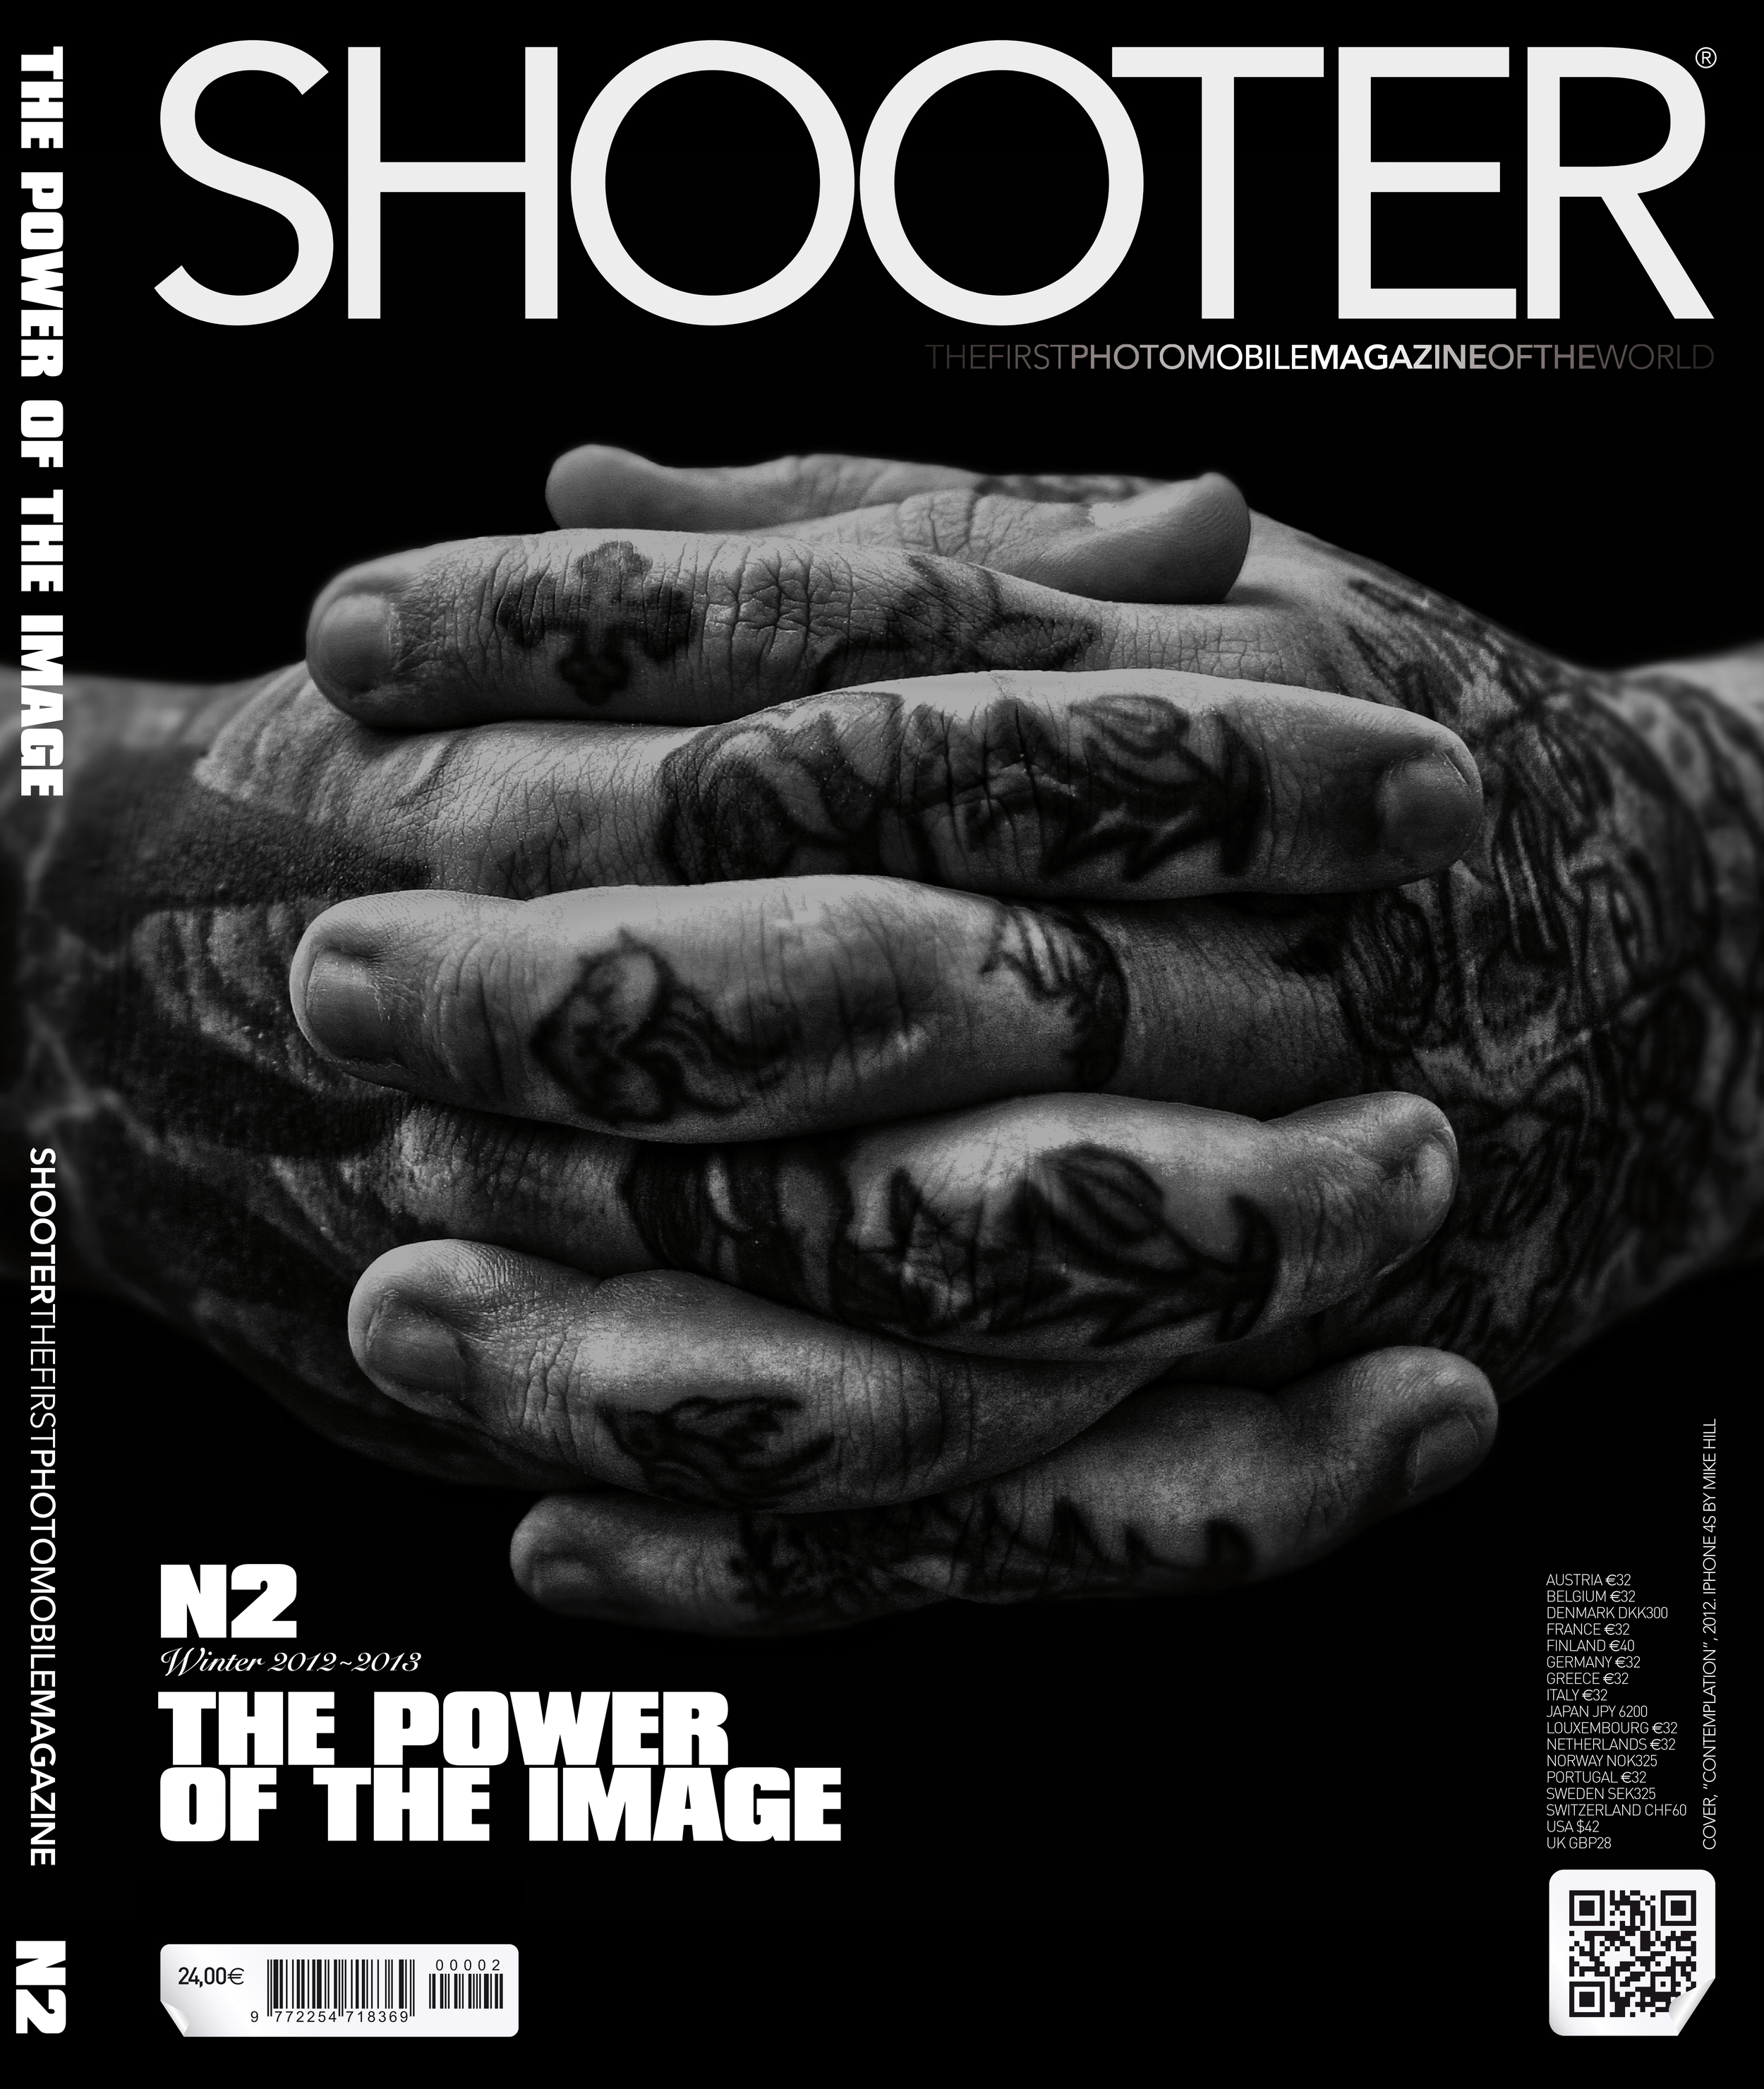 My photo was used for the cover of the second issue of Shooter Photo Mobile Magazine (International) and some of my photos were featured inside. Use this link to subscribe to Shooter.